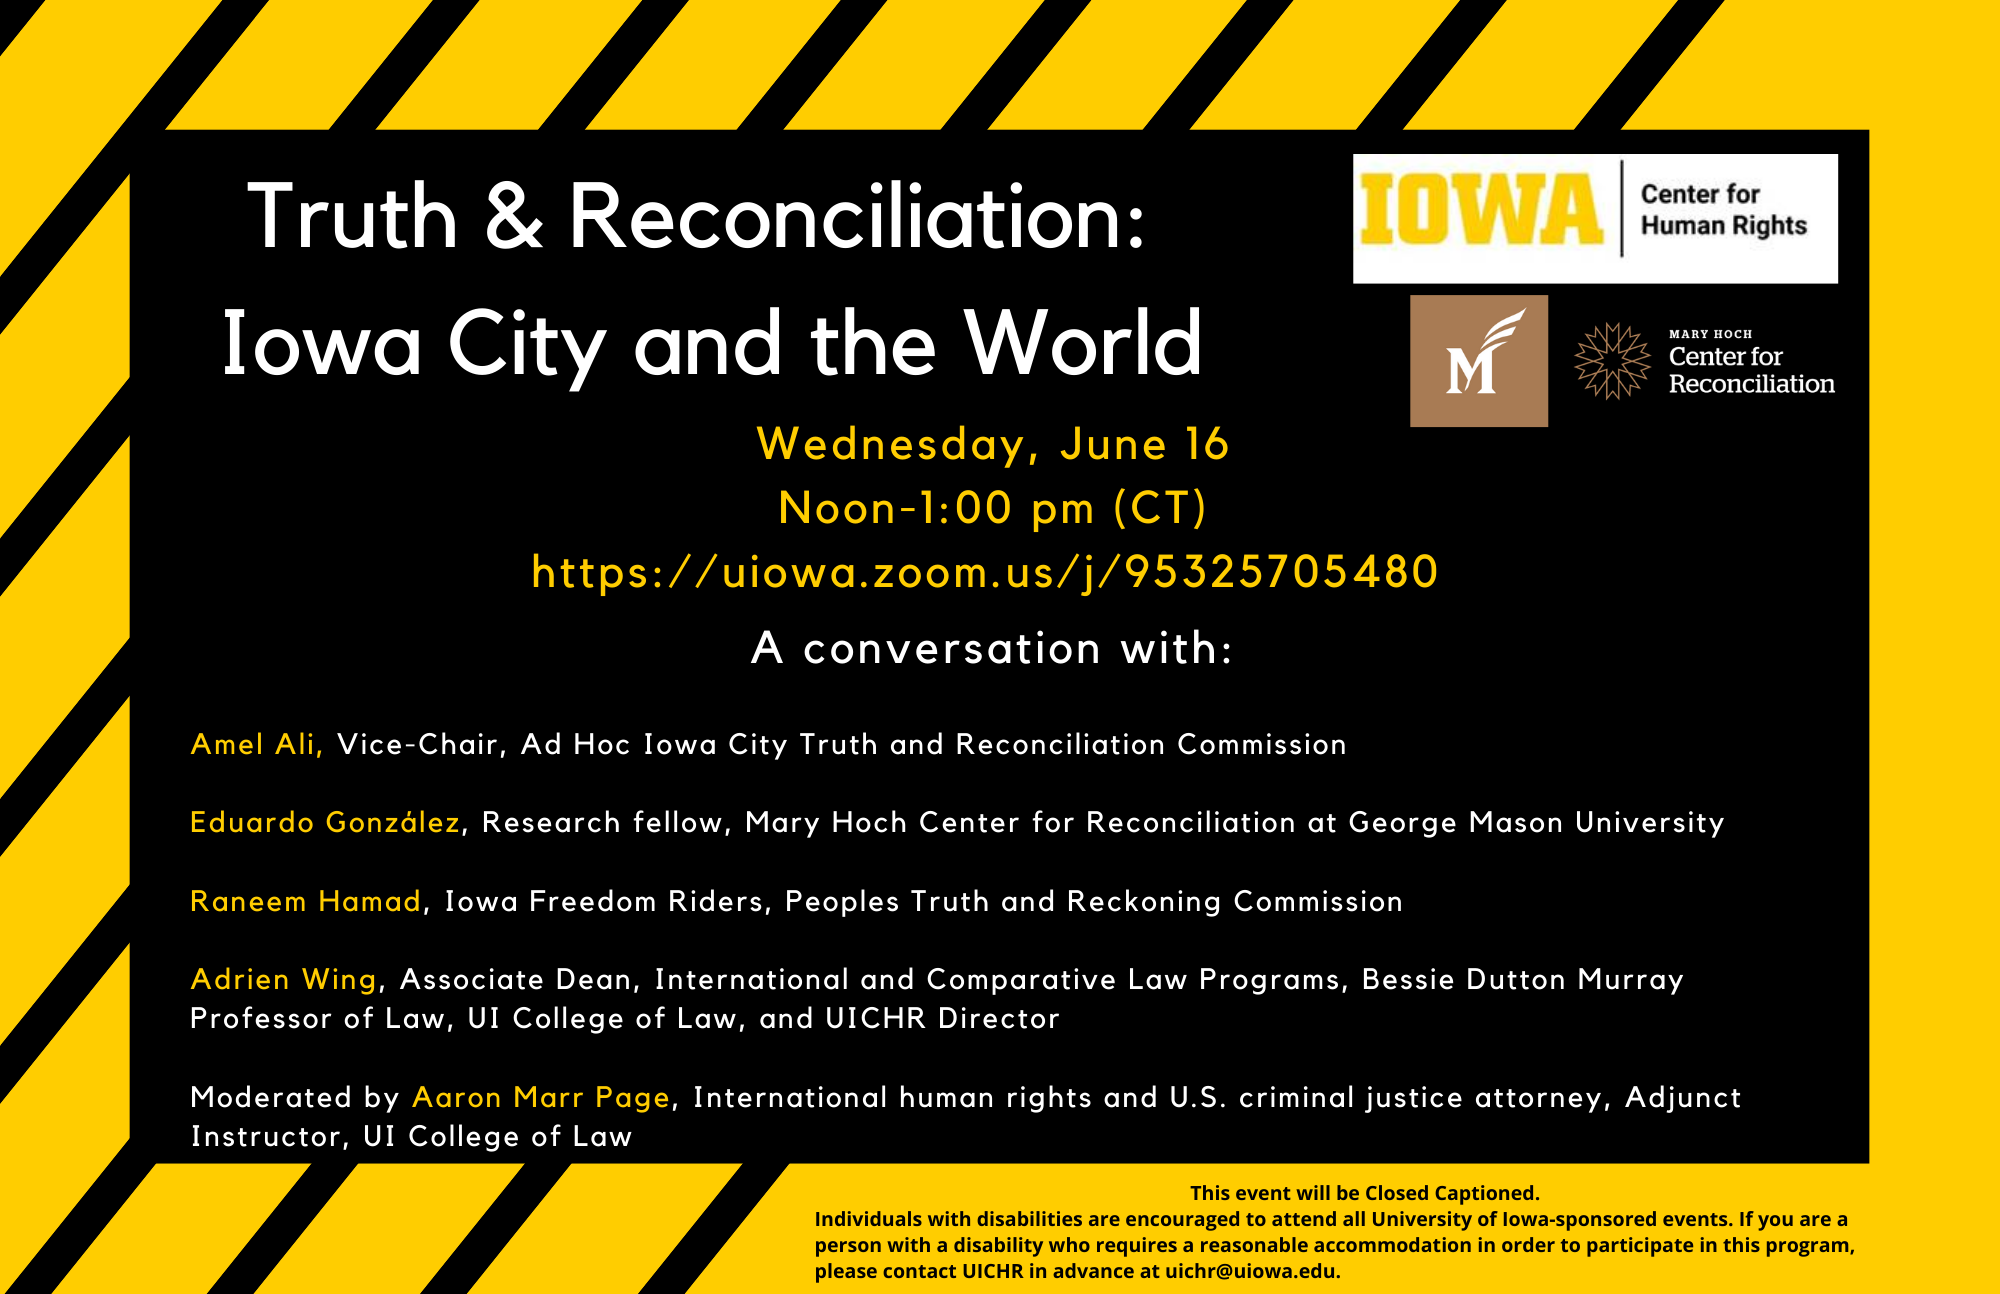 Truth and Reconciliation: Iowa City and the World